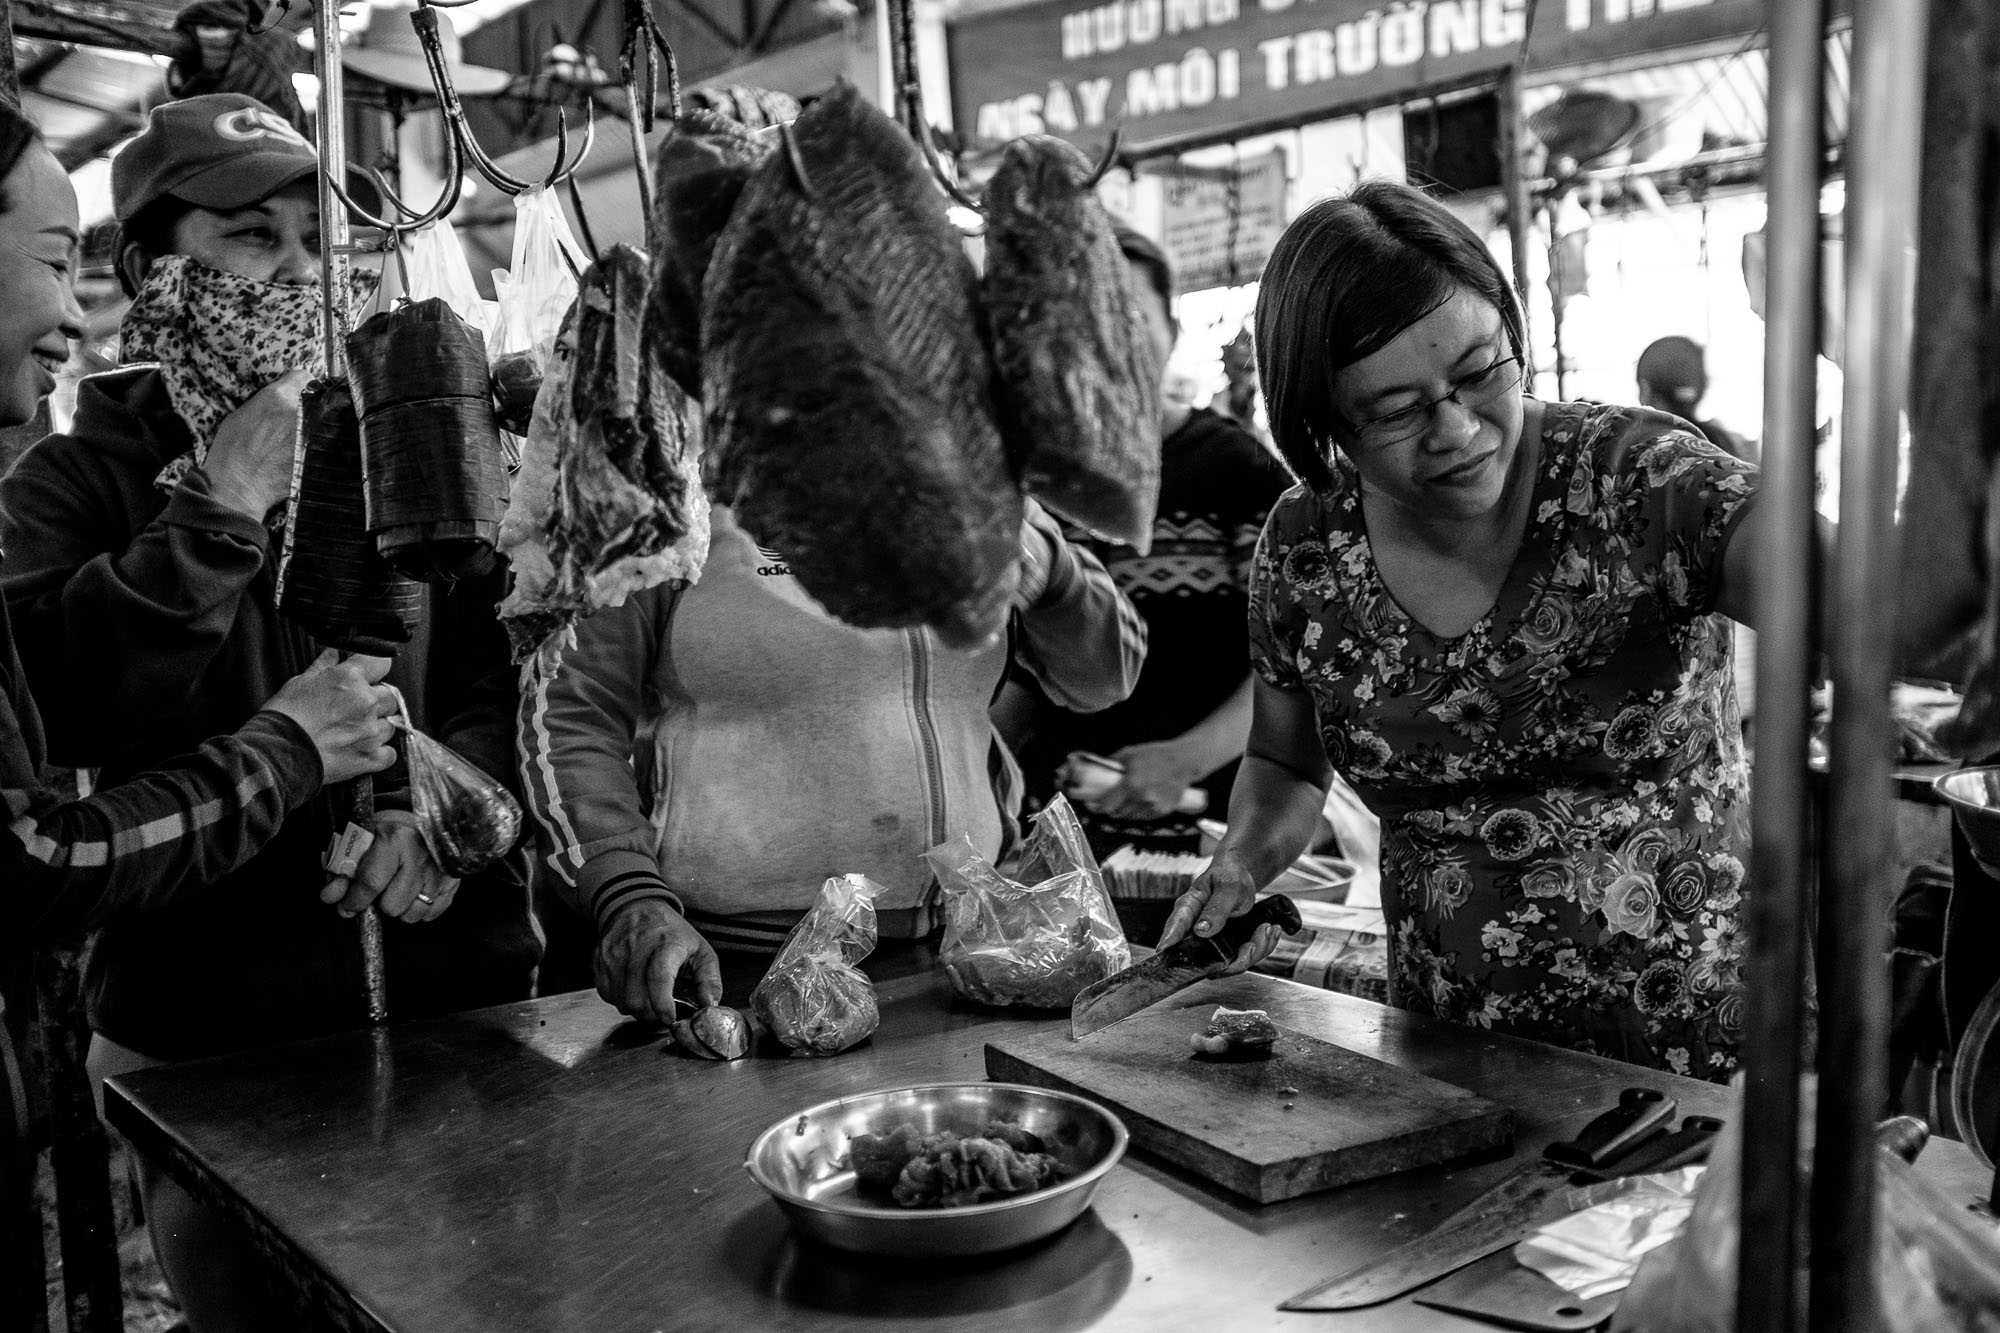 A vendor is cutting meat for wainting customers